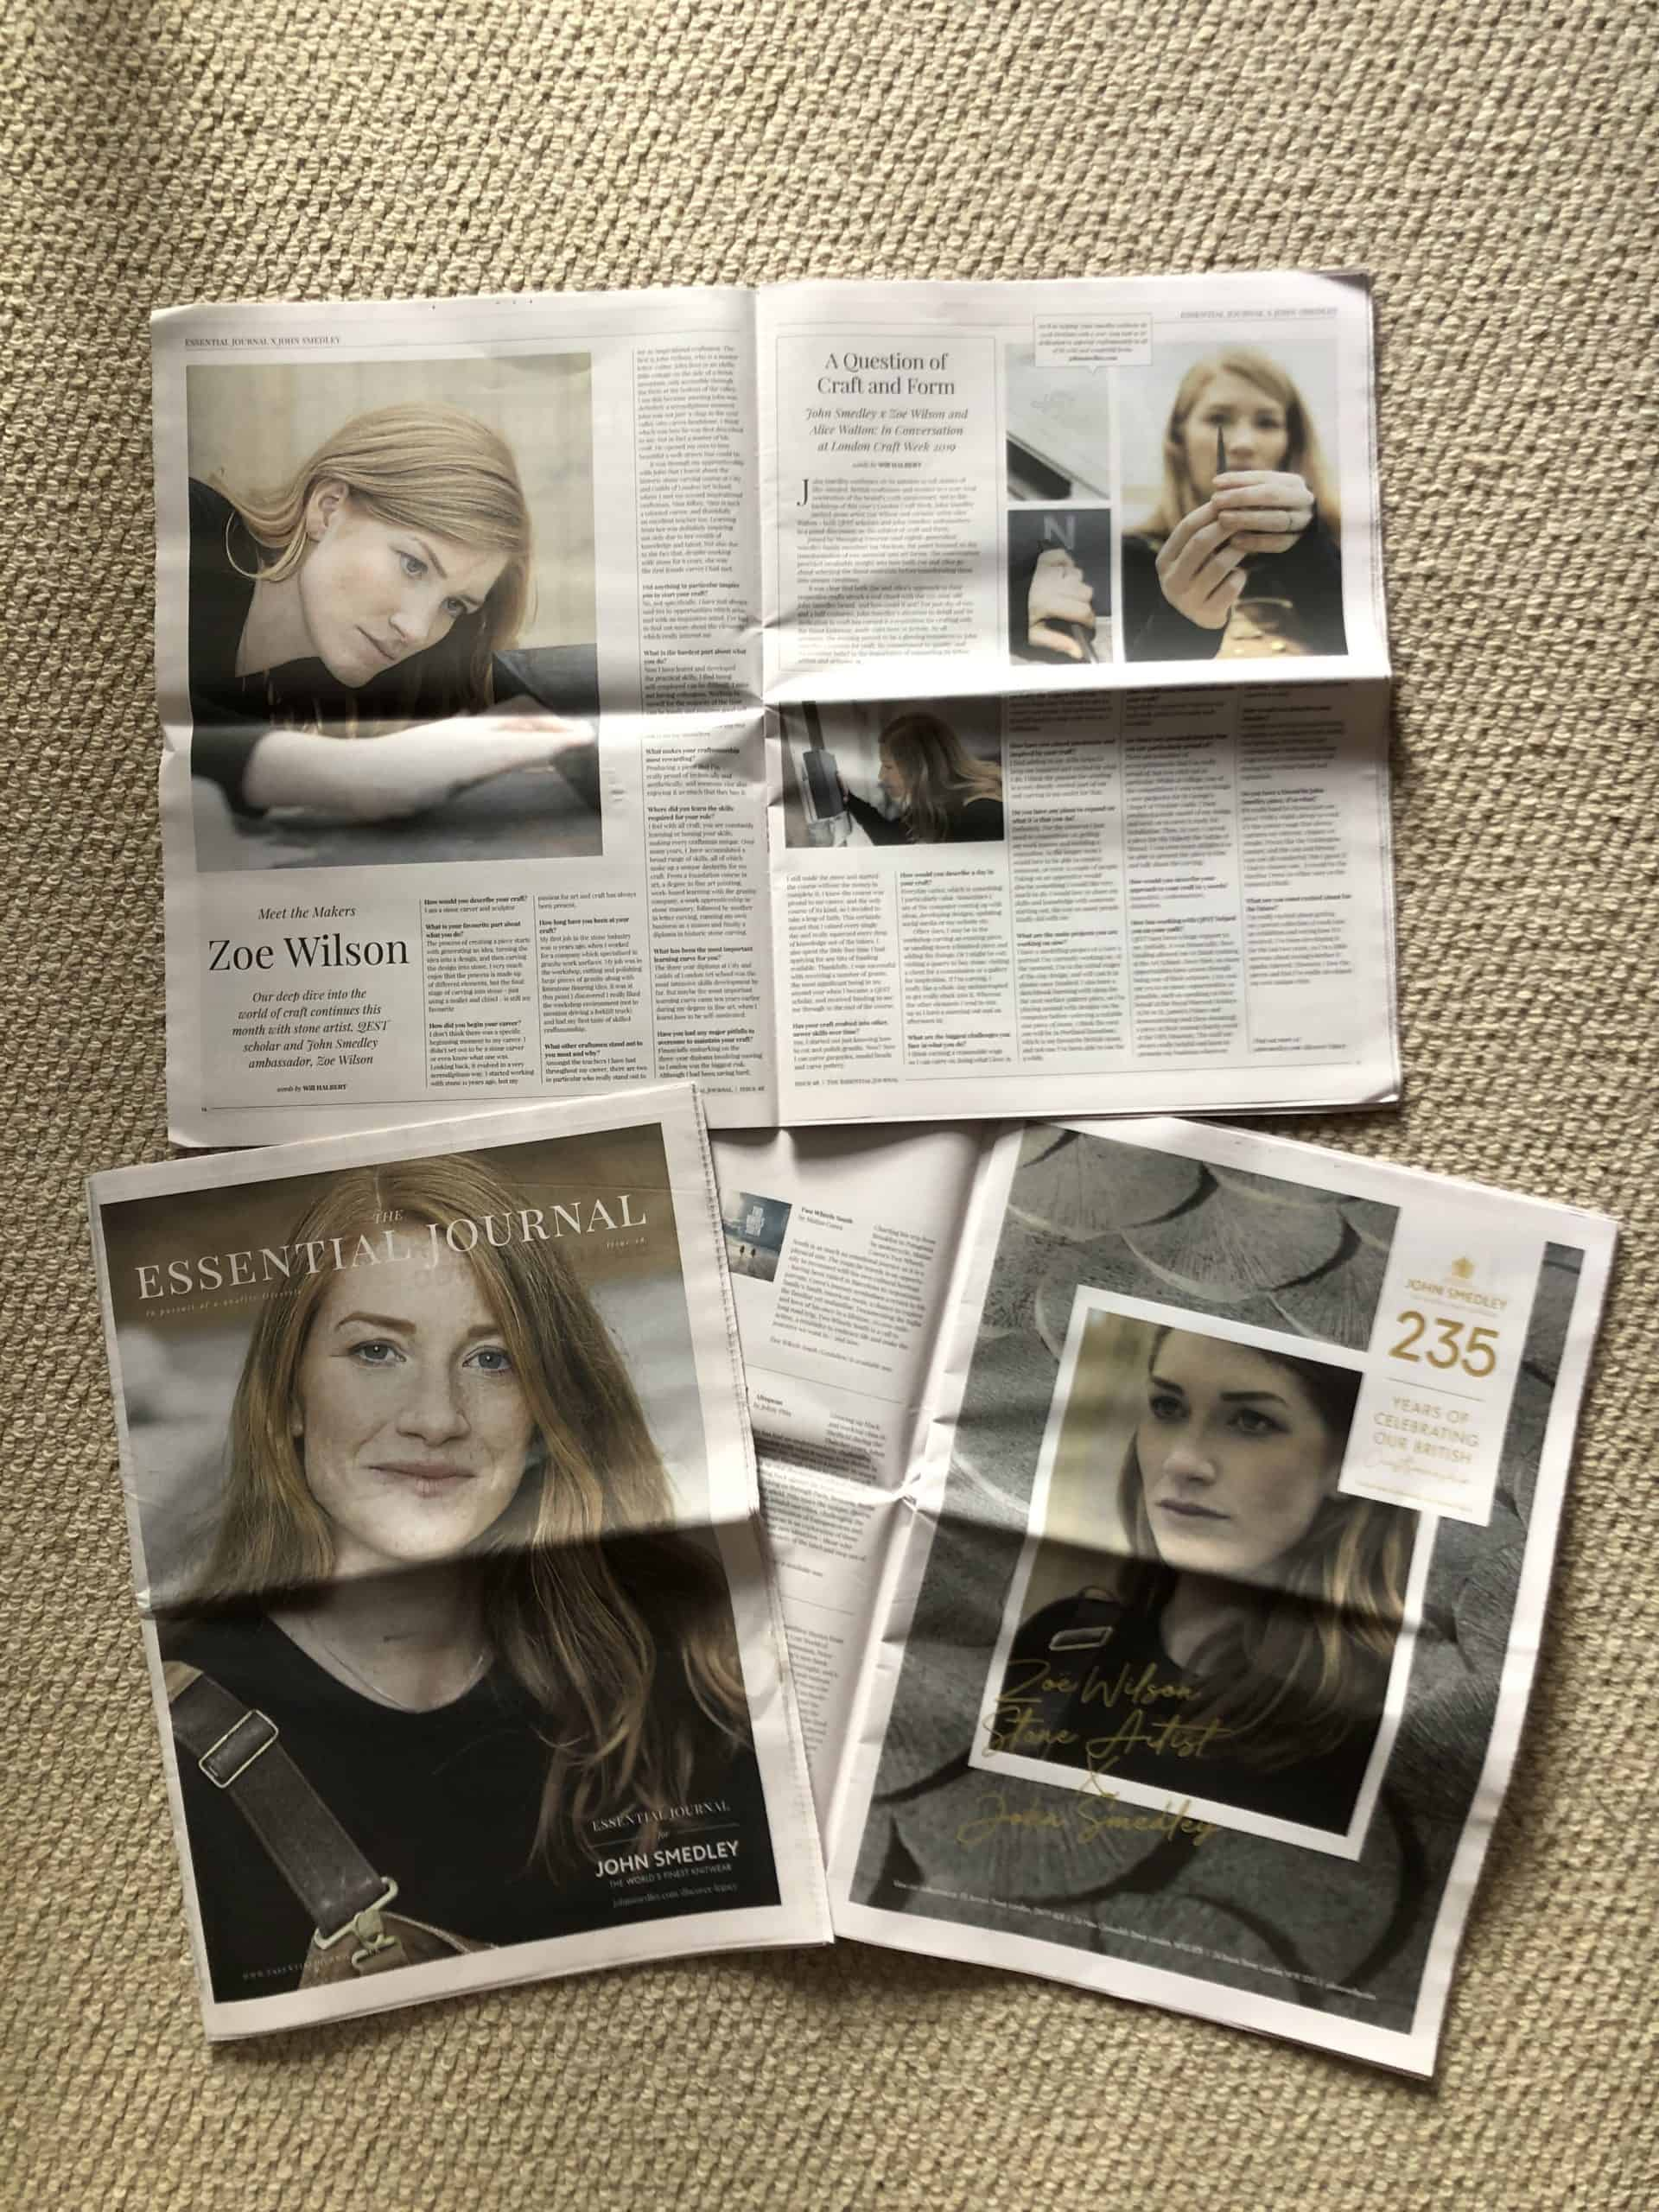 Zoe Wilson on the front cover of the Essential Magazine